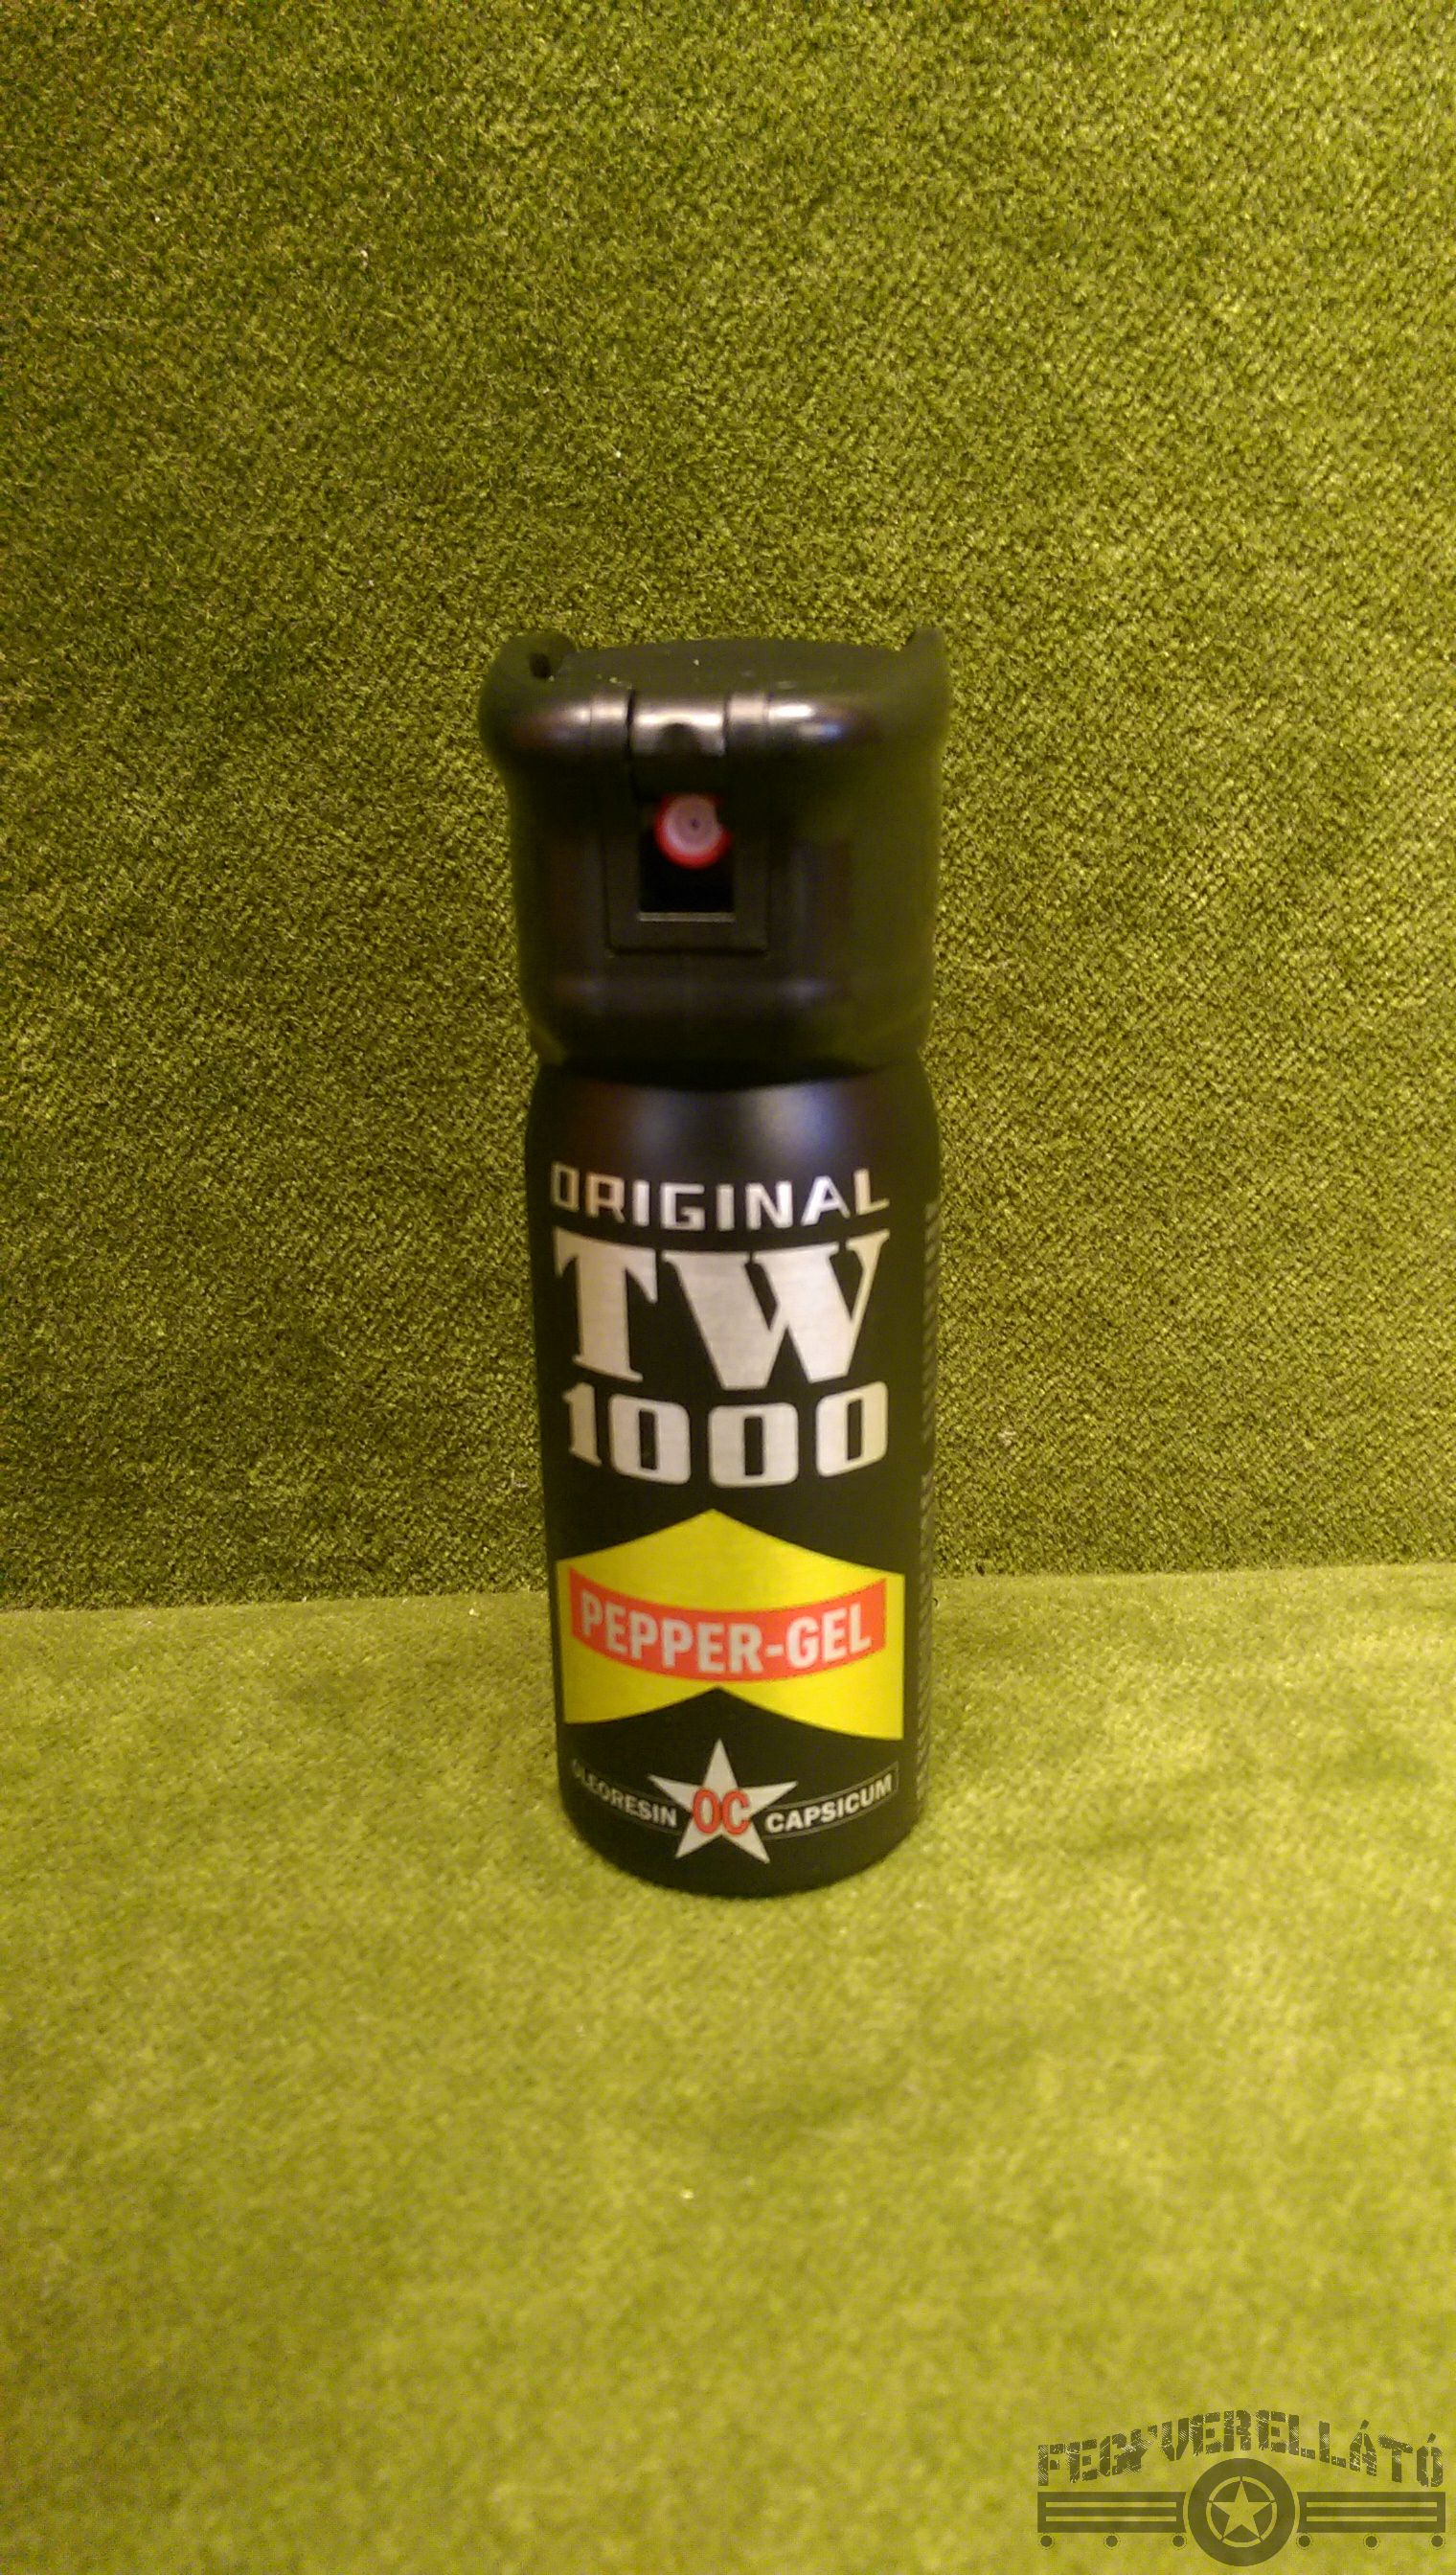 TW1000, Pepper, GEL, 50 ml